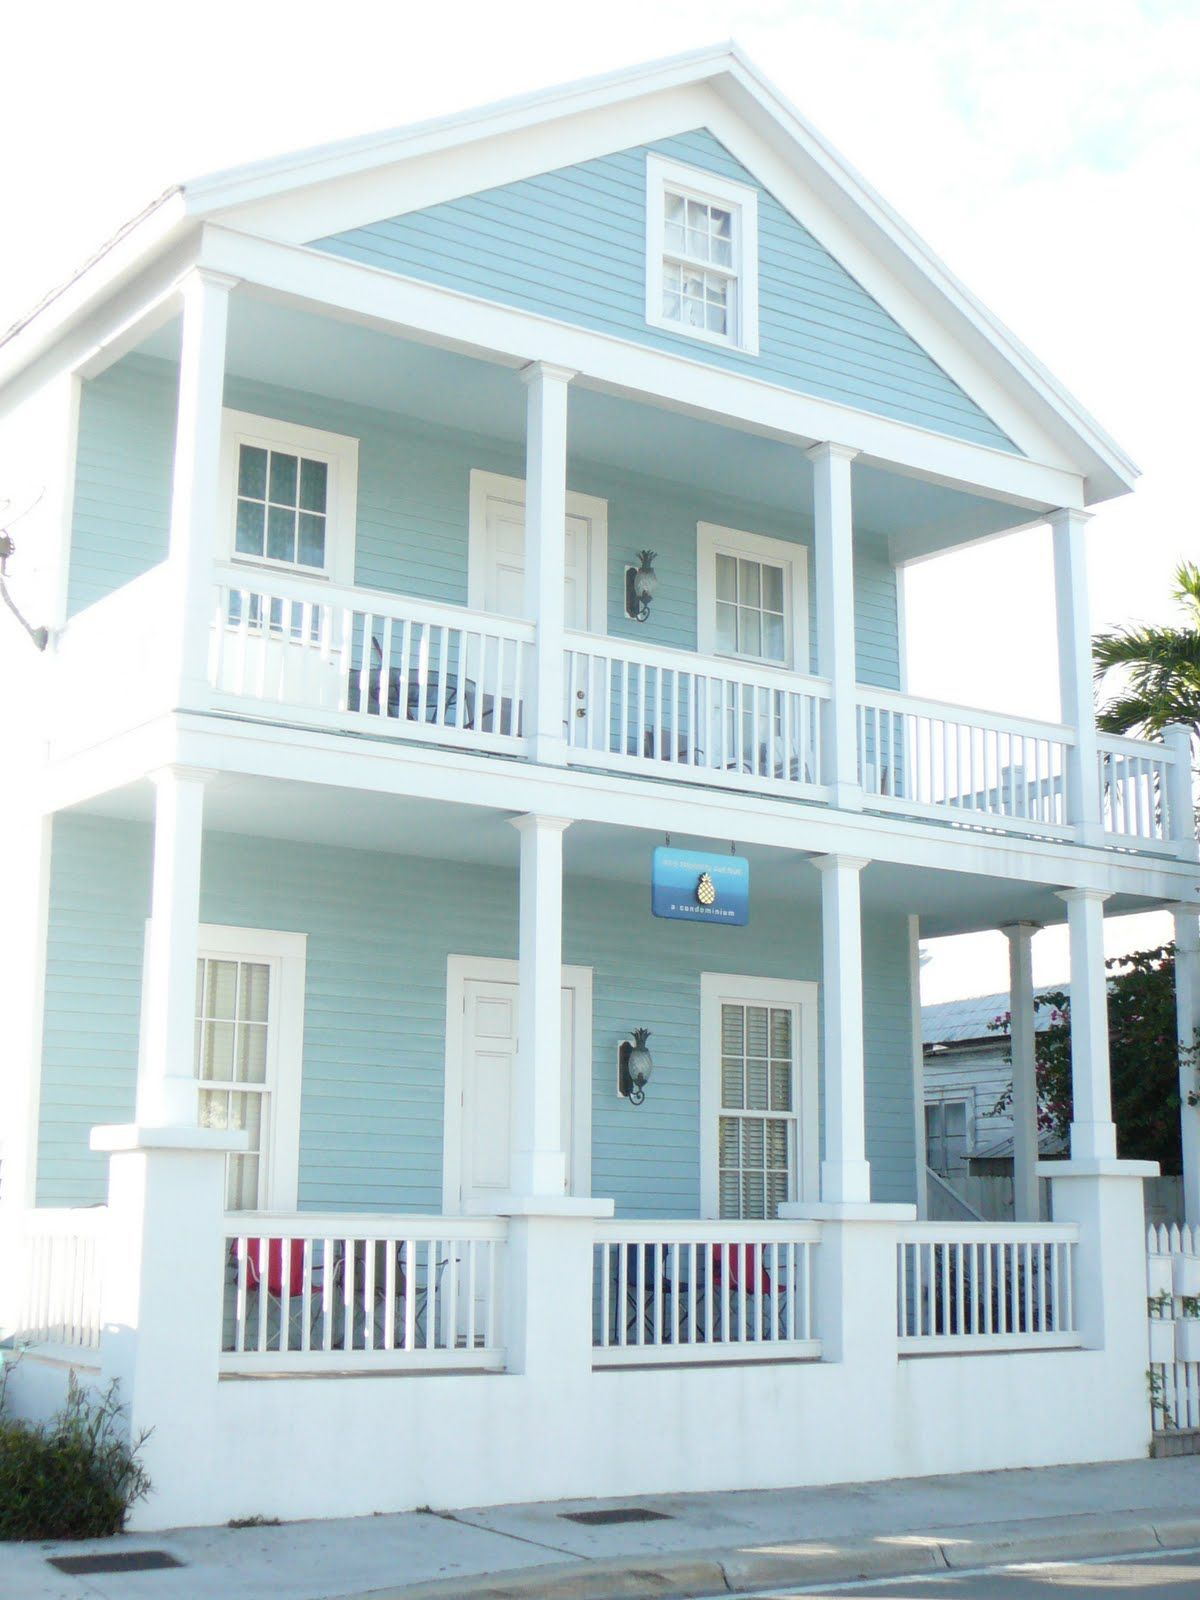 The Houses Of Key West Pt2 On Hurricane Alley And America S Southern Most Point Beach House Exterior House Paint Exterior Exterior Paint Colors For House